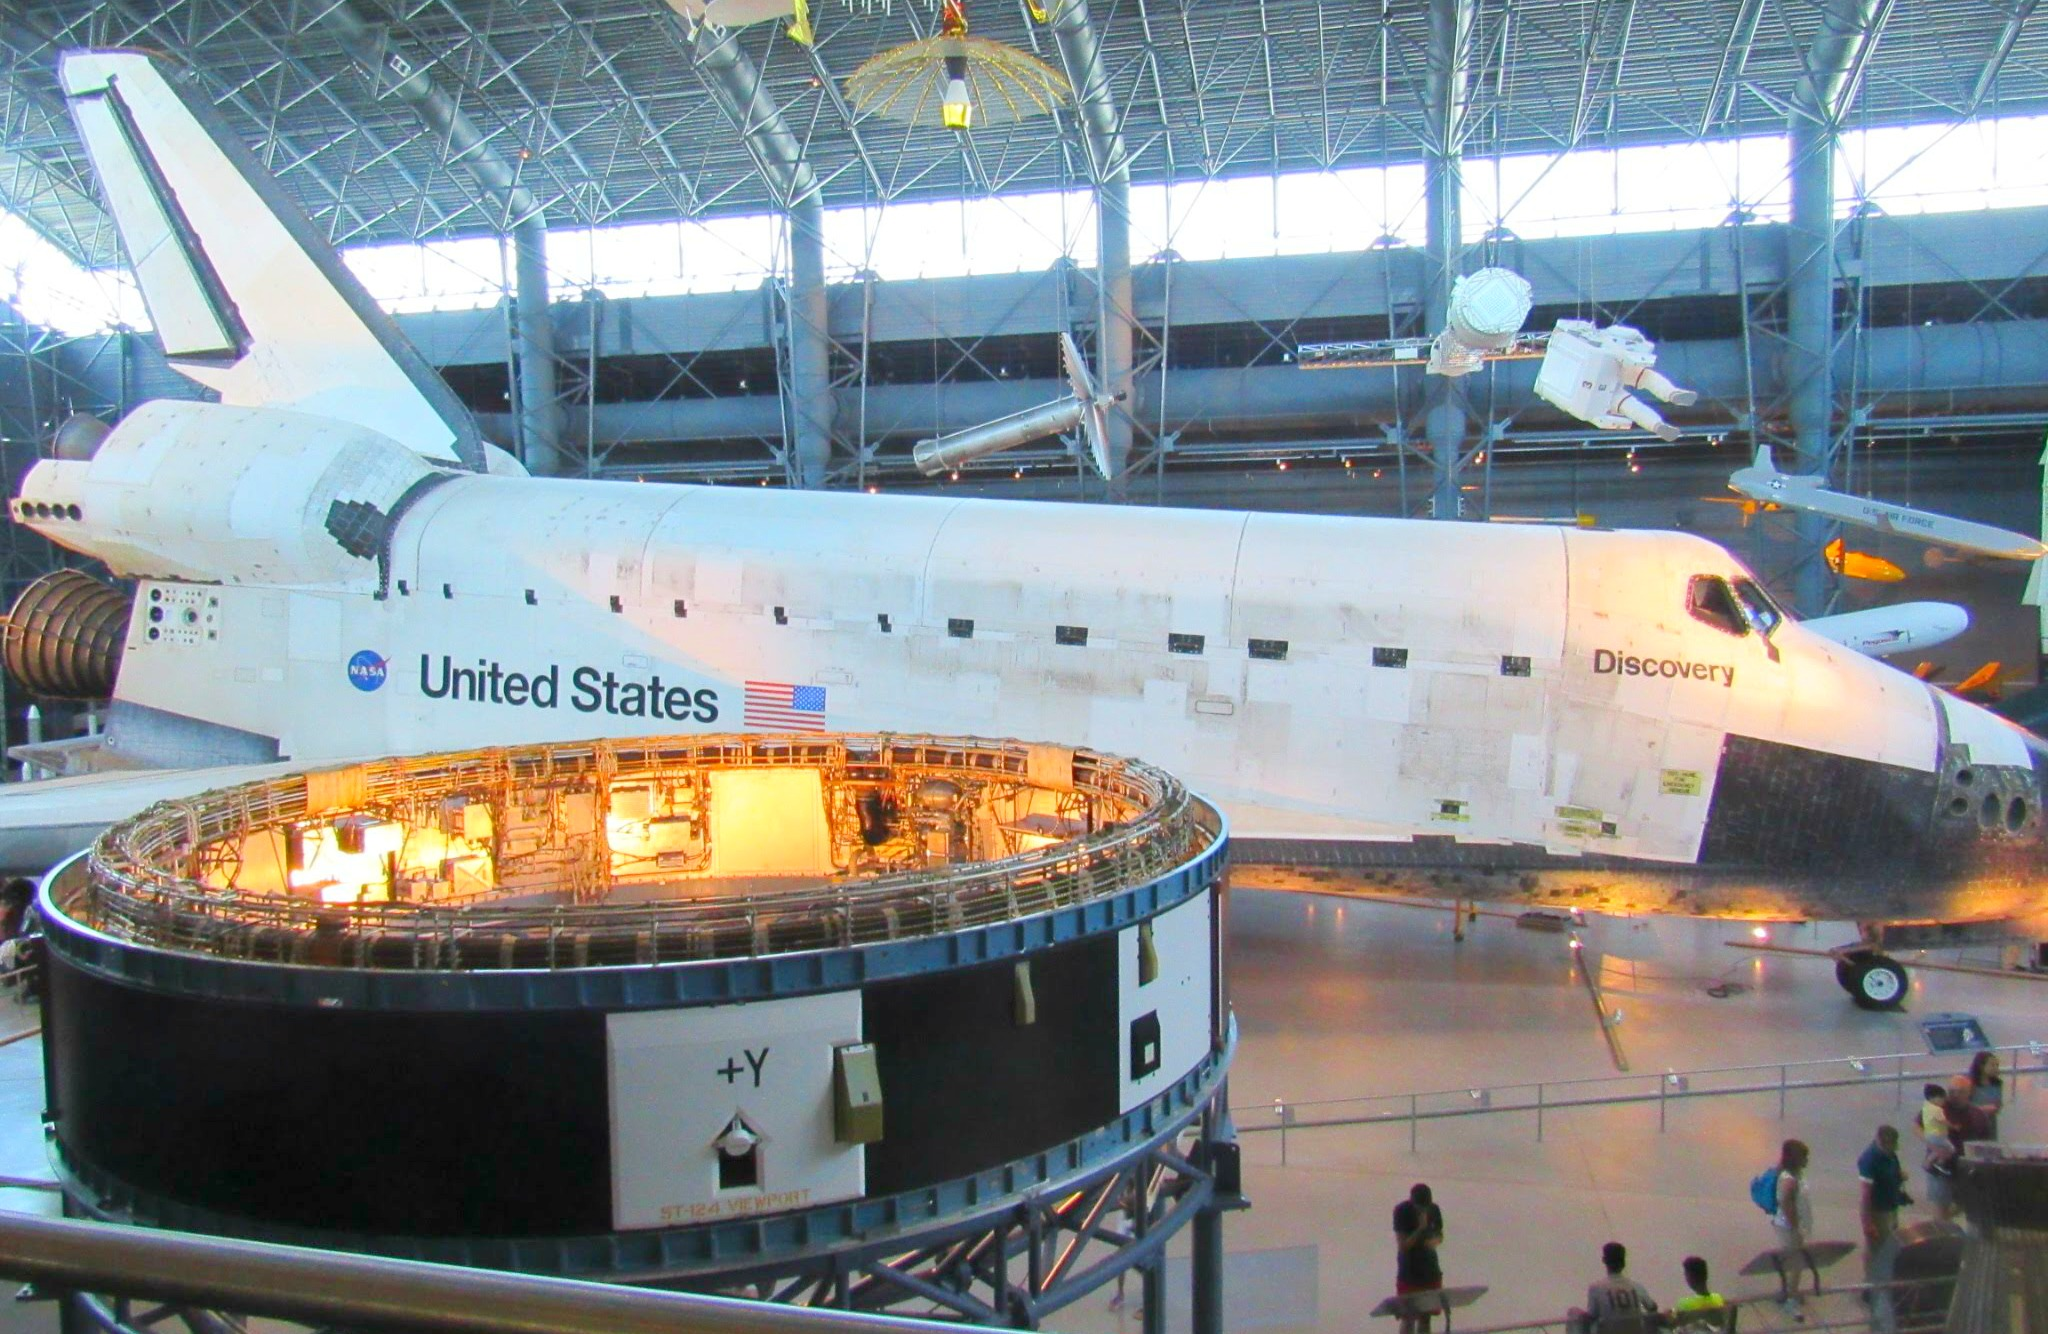 Space Shuttle Discovery at Udvar-Hazy in Chantilly